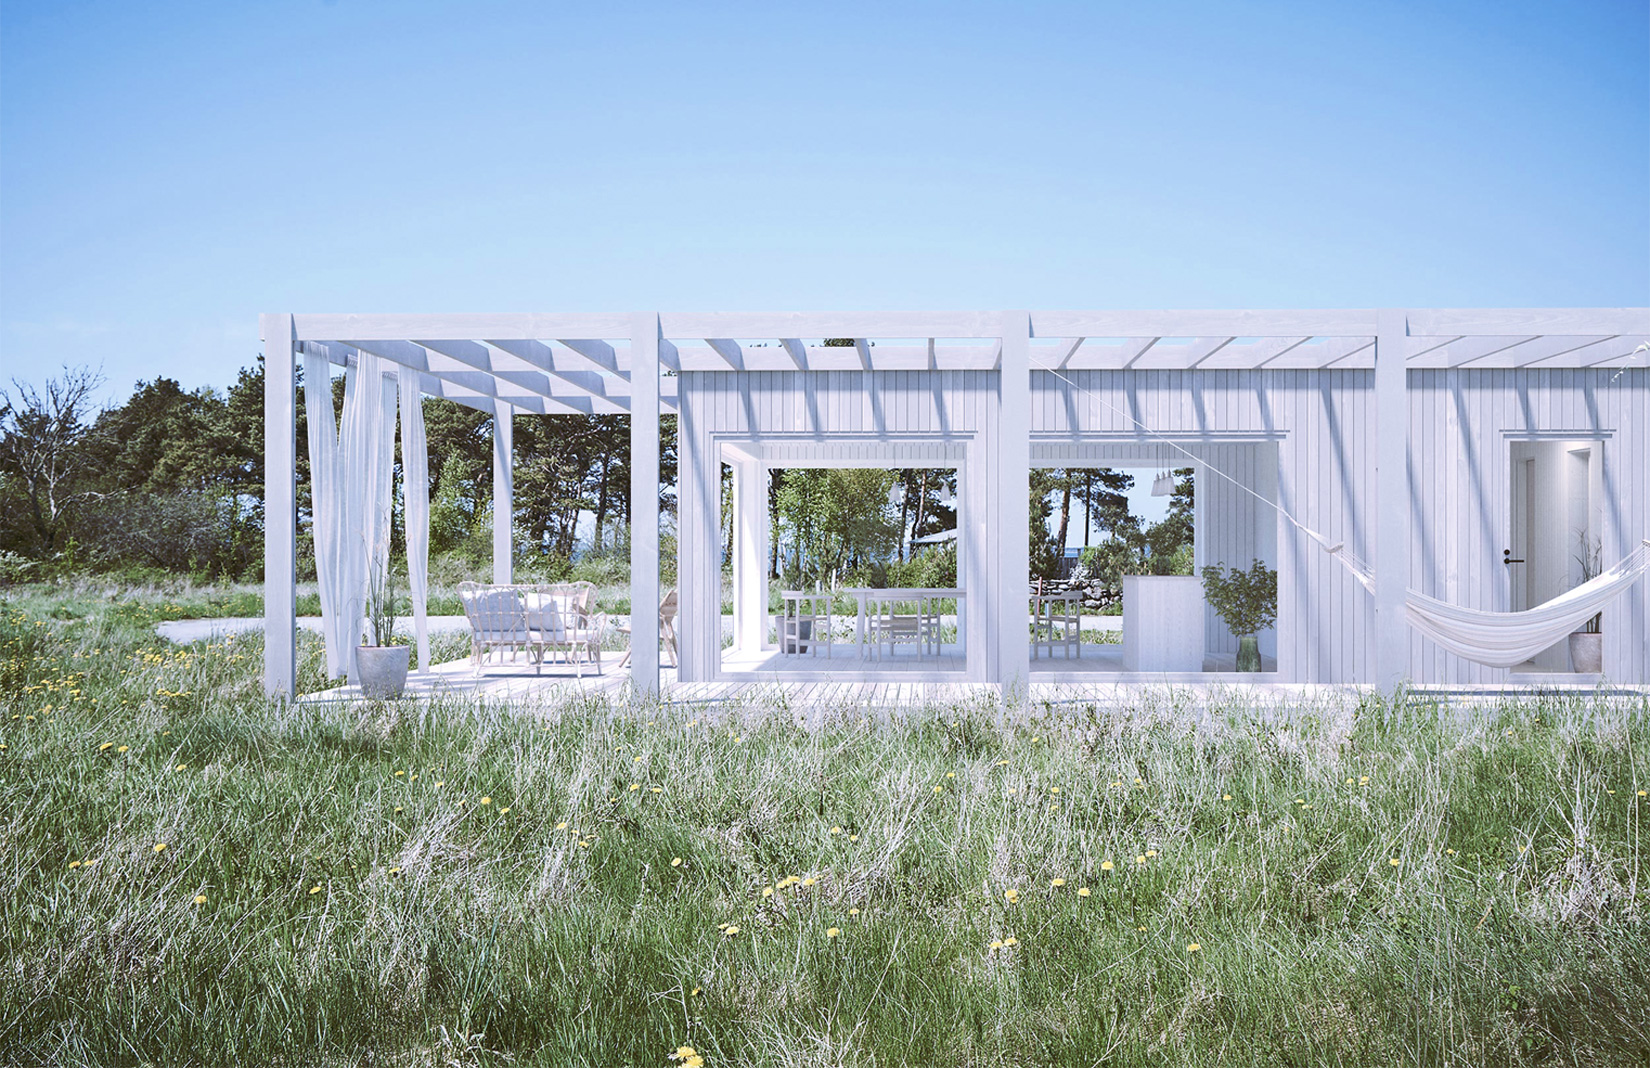 Unbuilt summer cabins on Sweden's Gotland